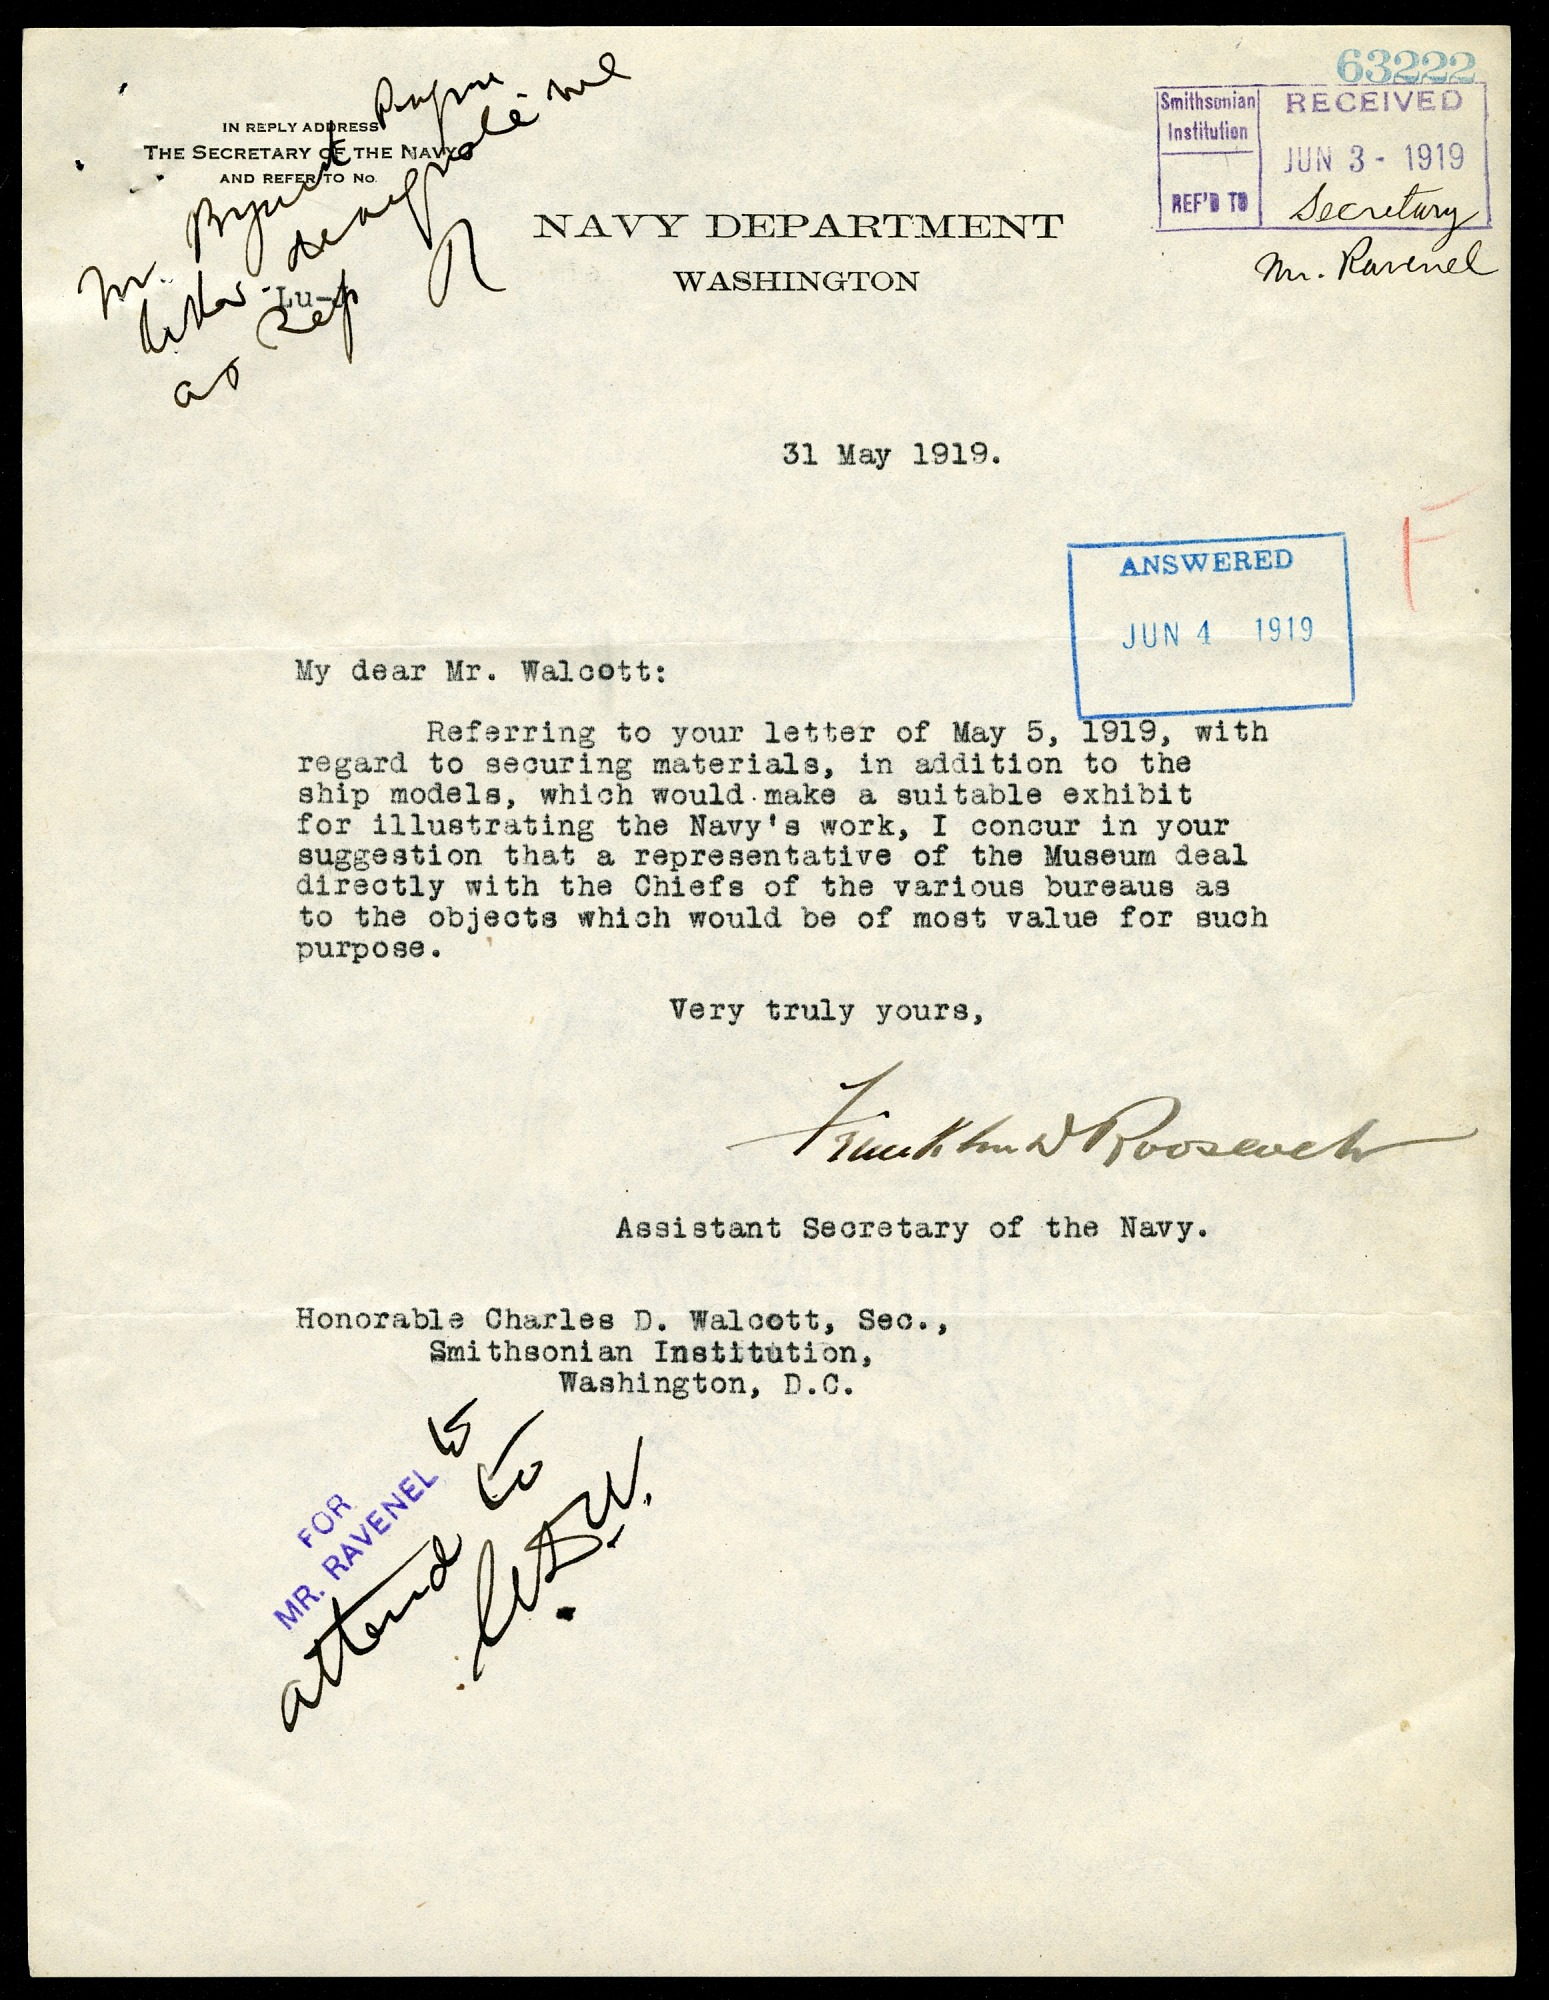 Letter from Franklin D. Roosevelt to Charles D. Walcott, May 31, 1919